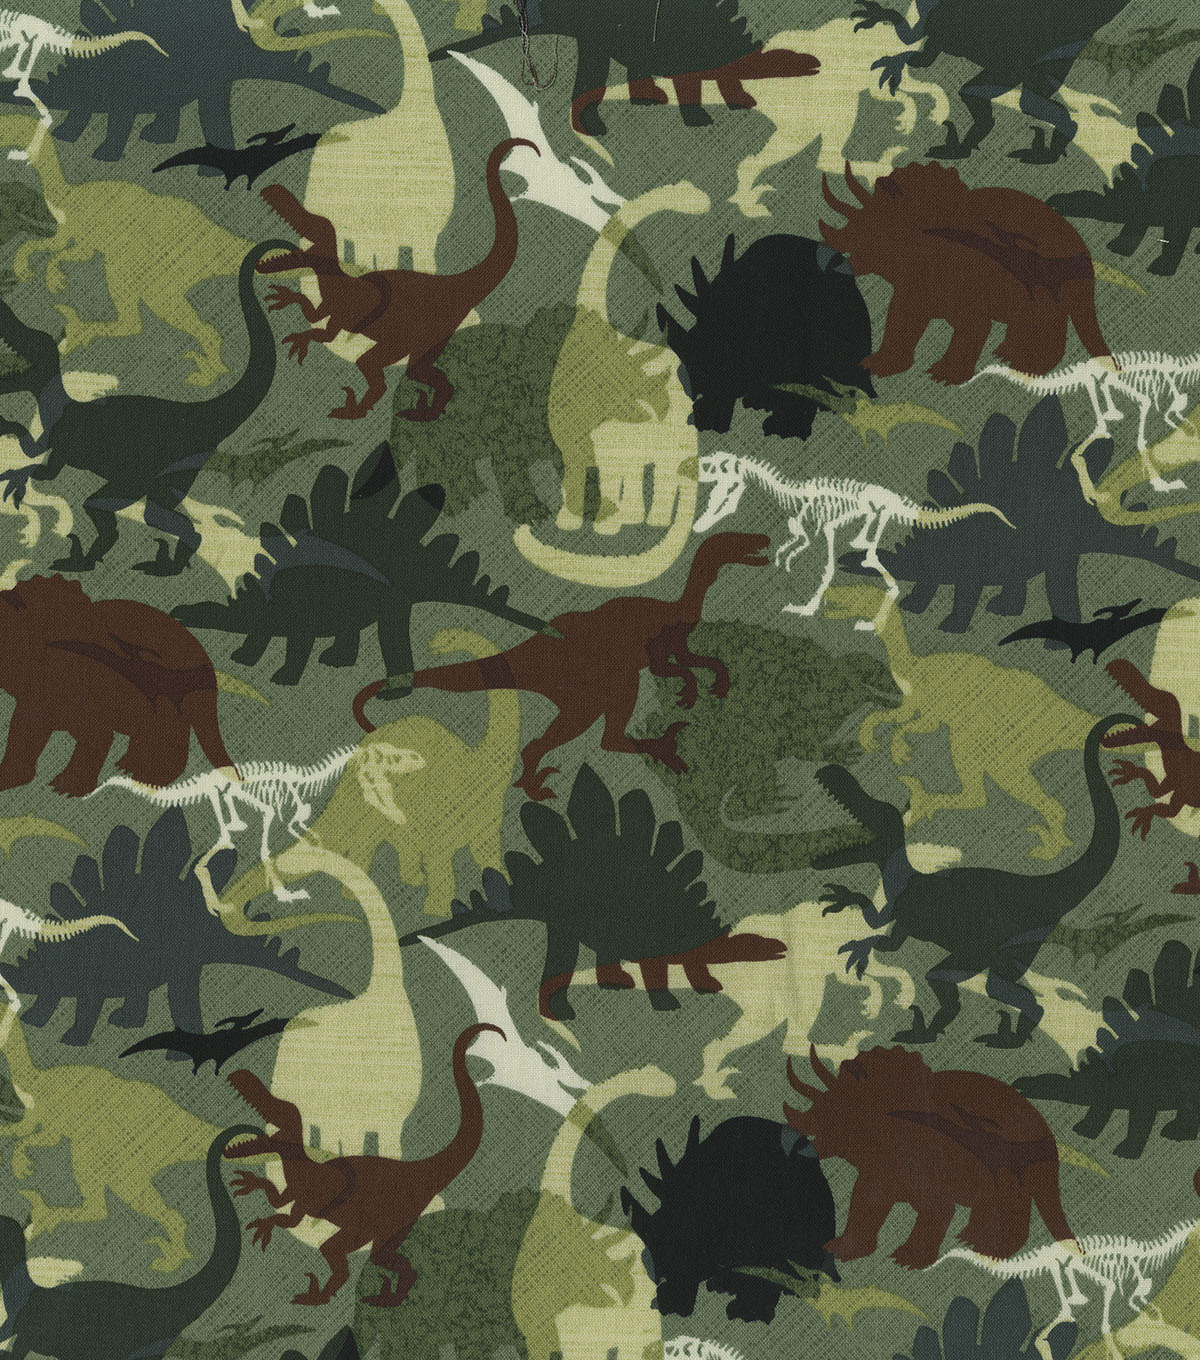 Novelty Cotton Fabric 44''-Camo Dinos